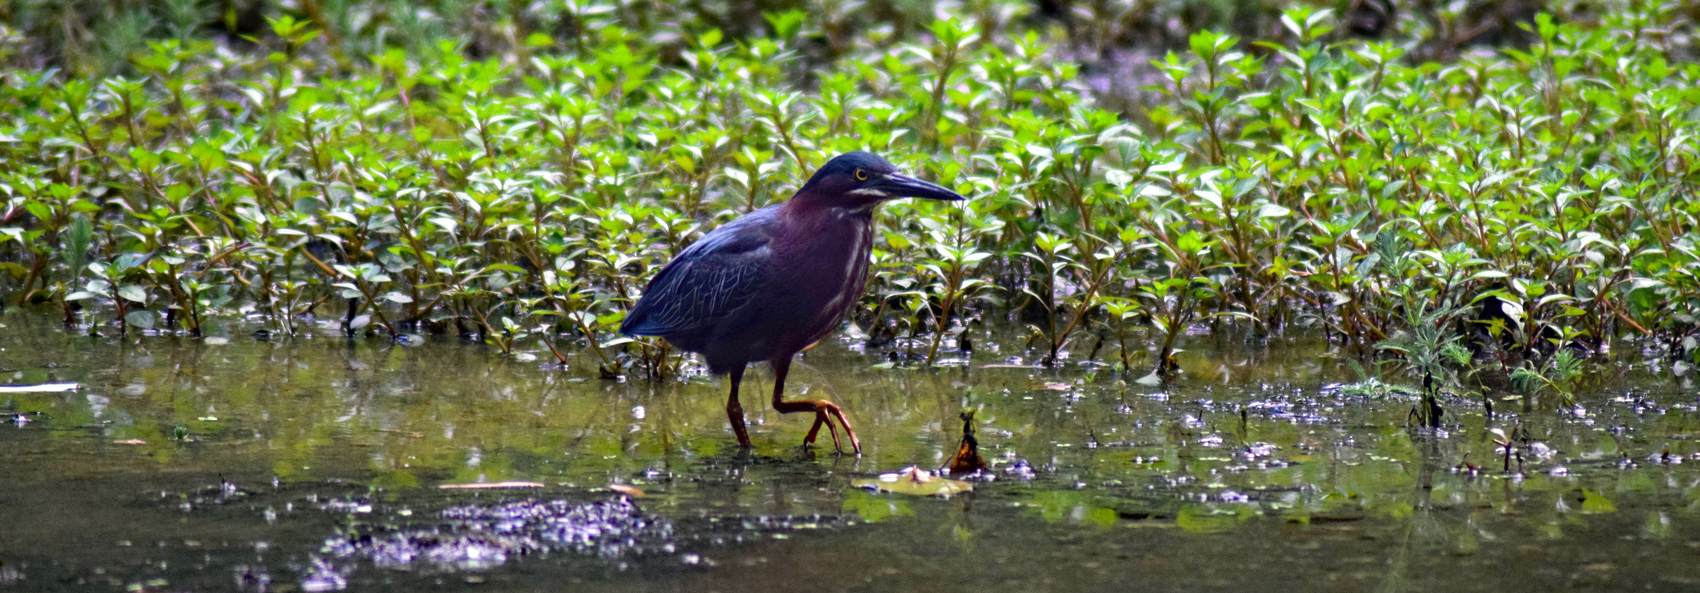 Green heron stalks prey in Hidden Pond